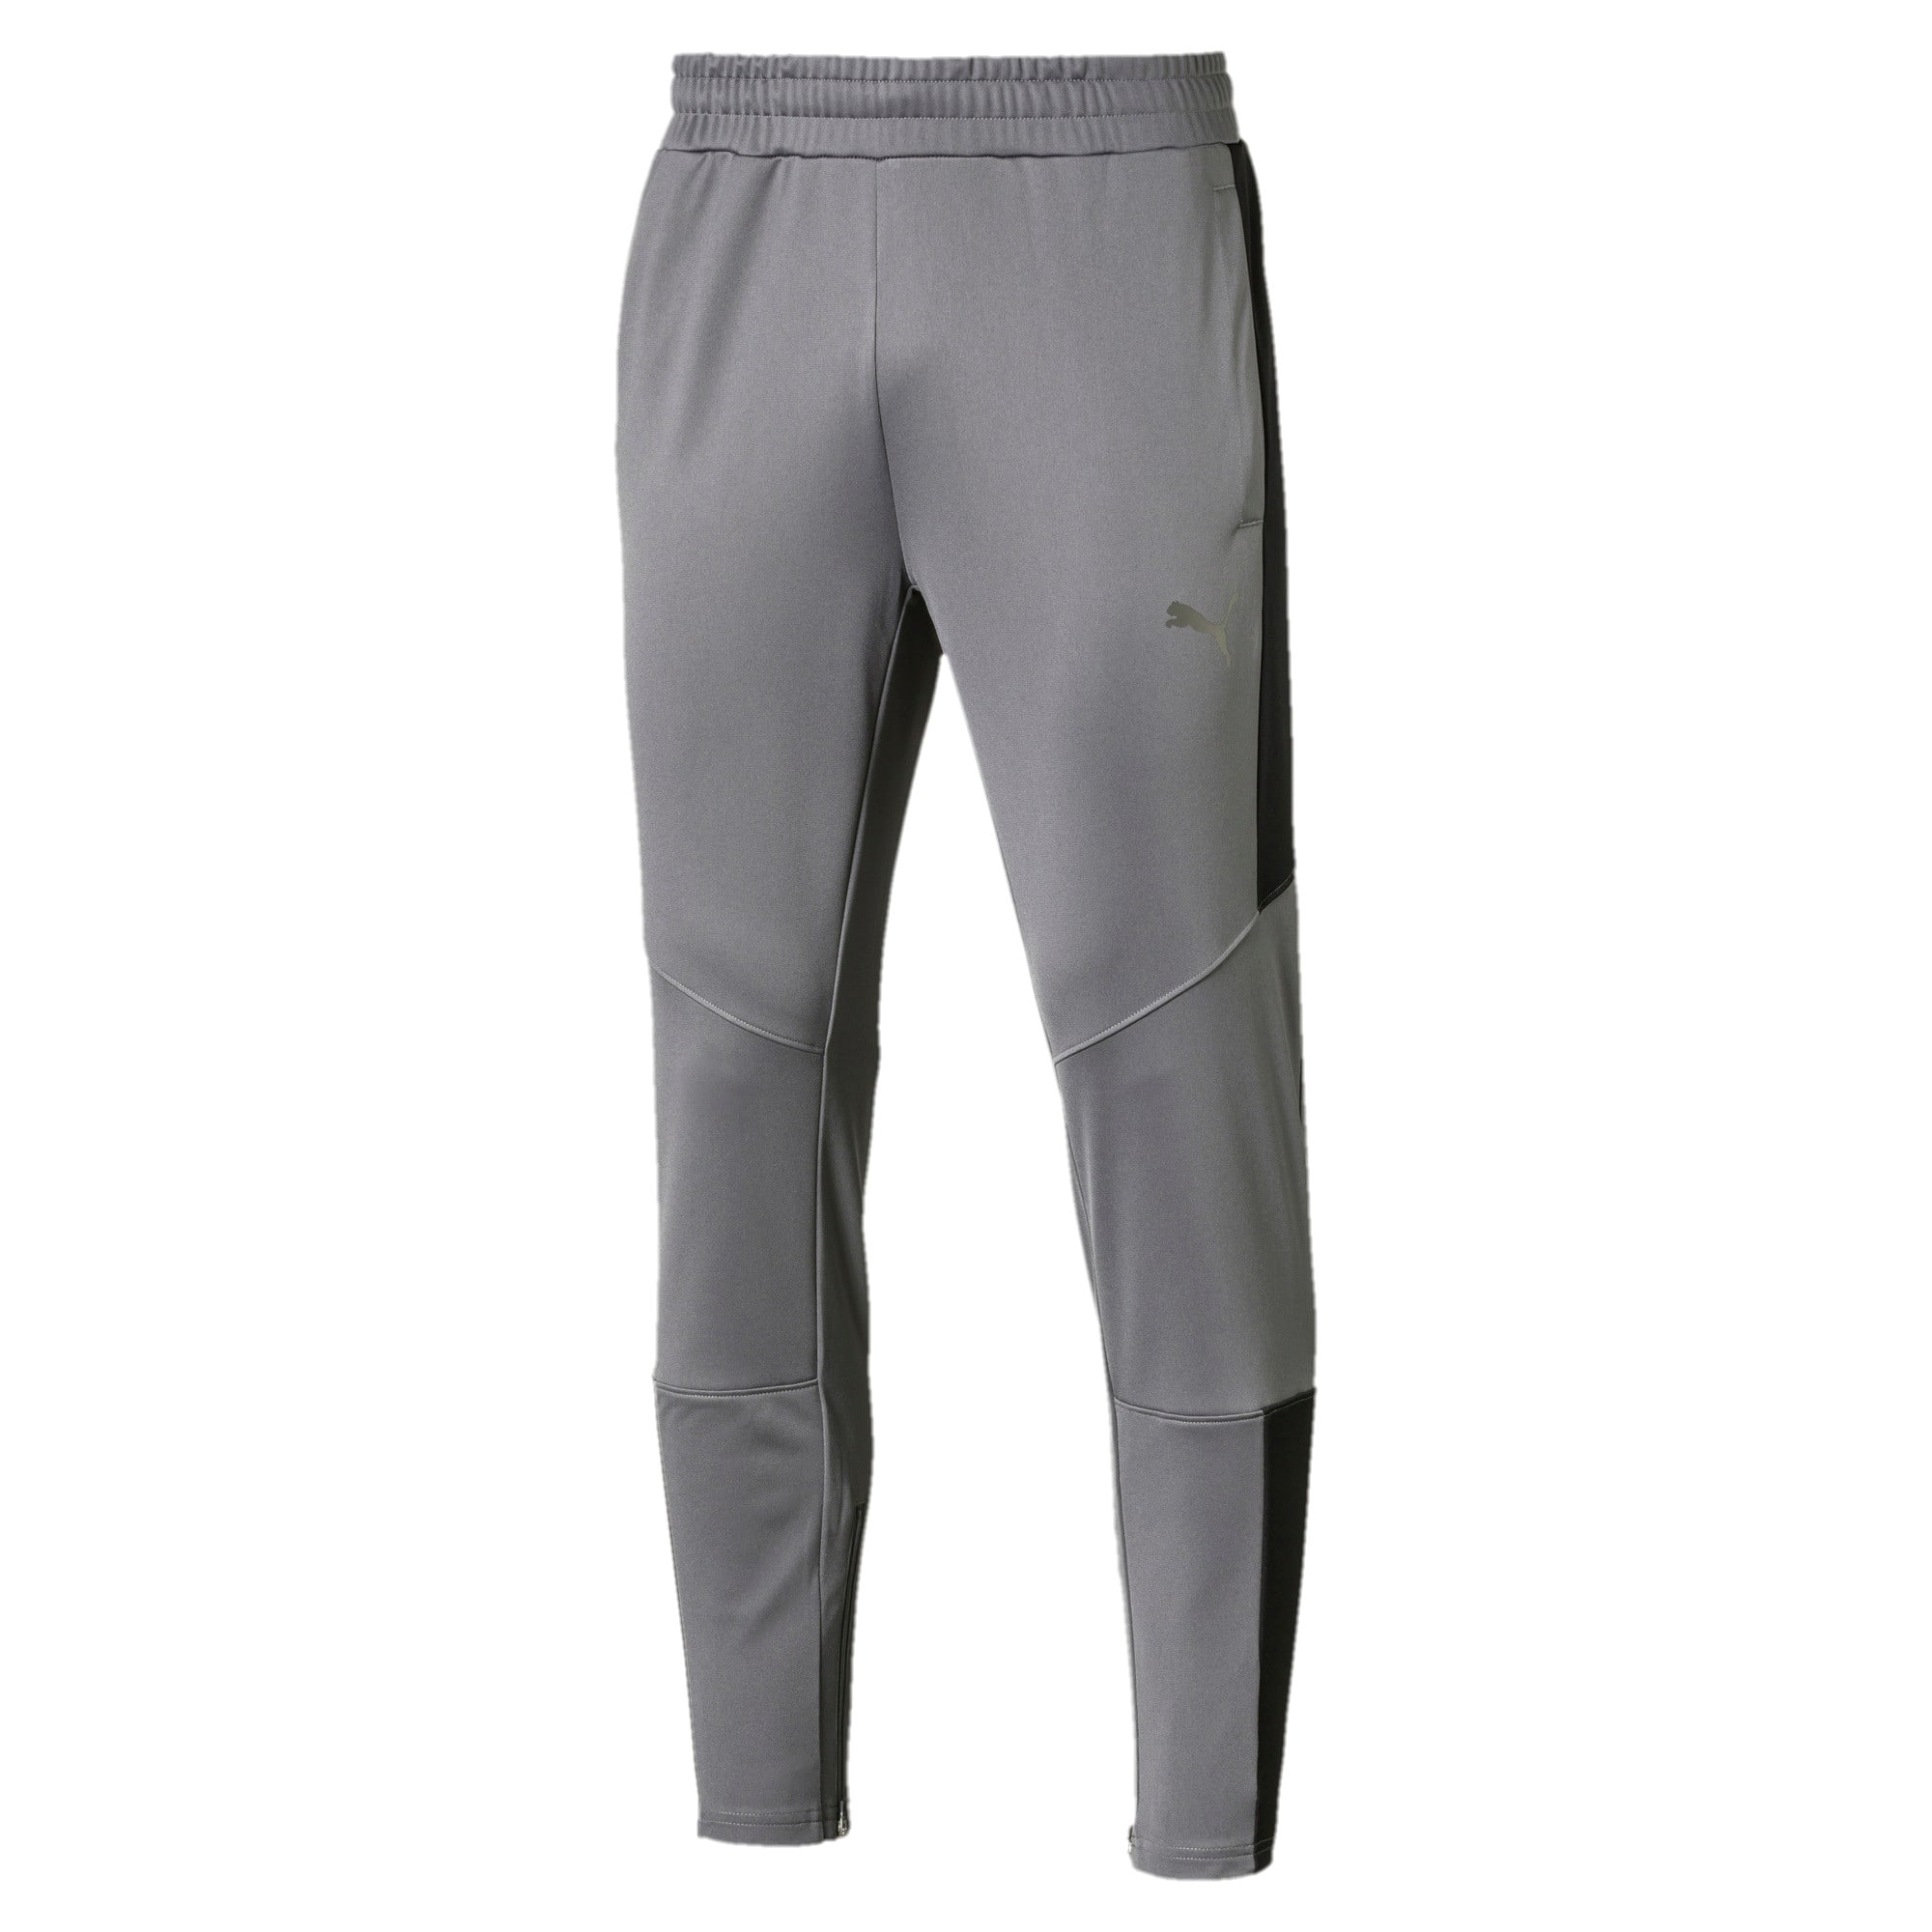 Thumbnail 1 of PUMA Blaster Men's Pants, CASTLEROCK-Puma Black, medium